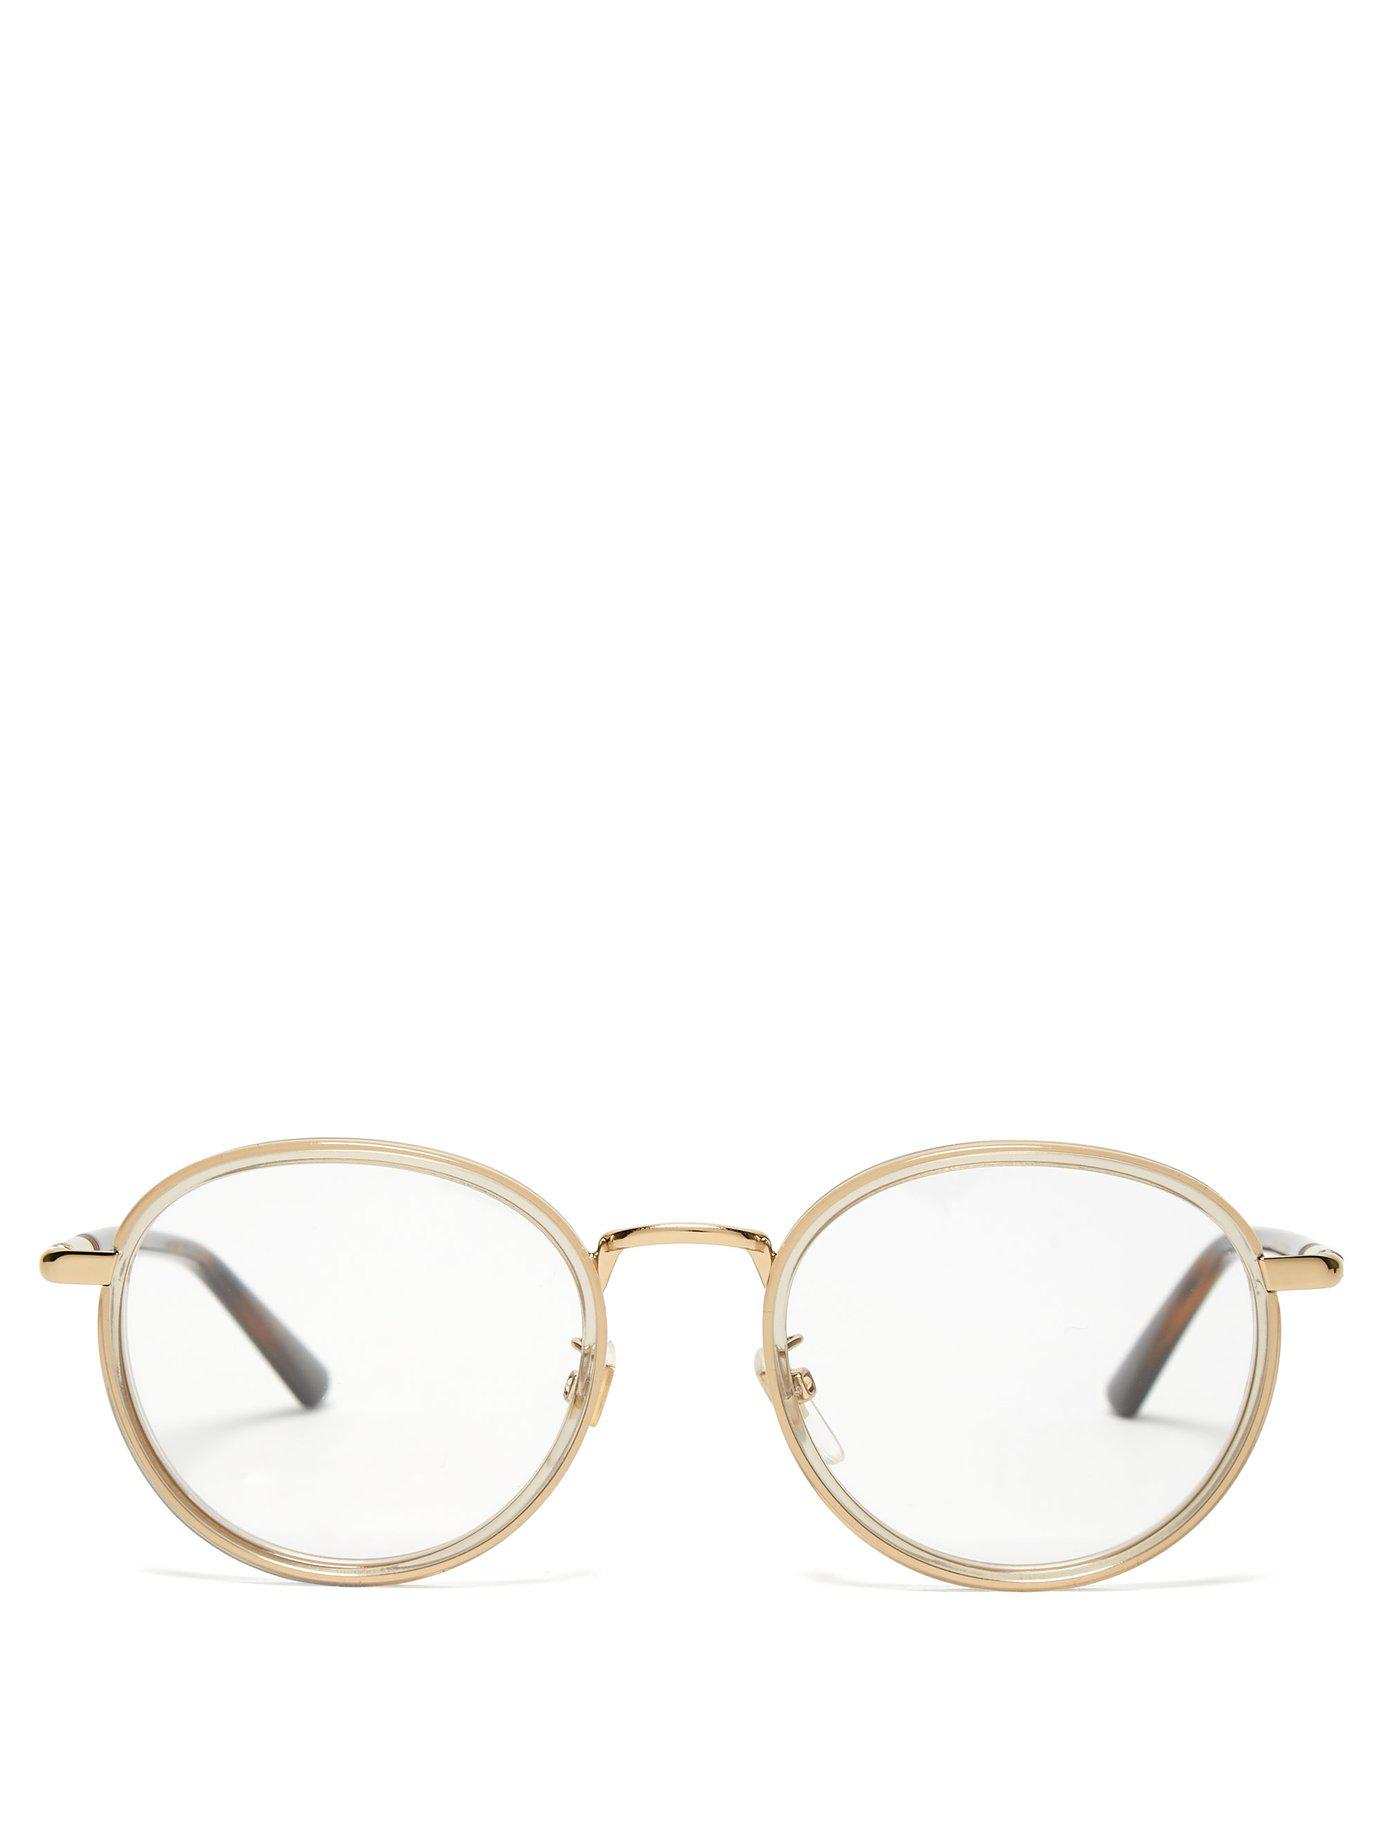 76a1043e26 Lyst - Gucci Web Striped Round Frame Glasses in Metallic